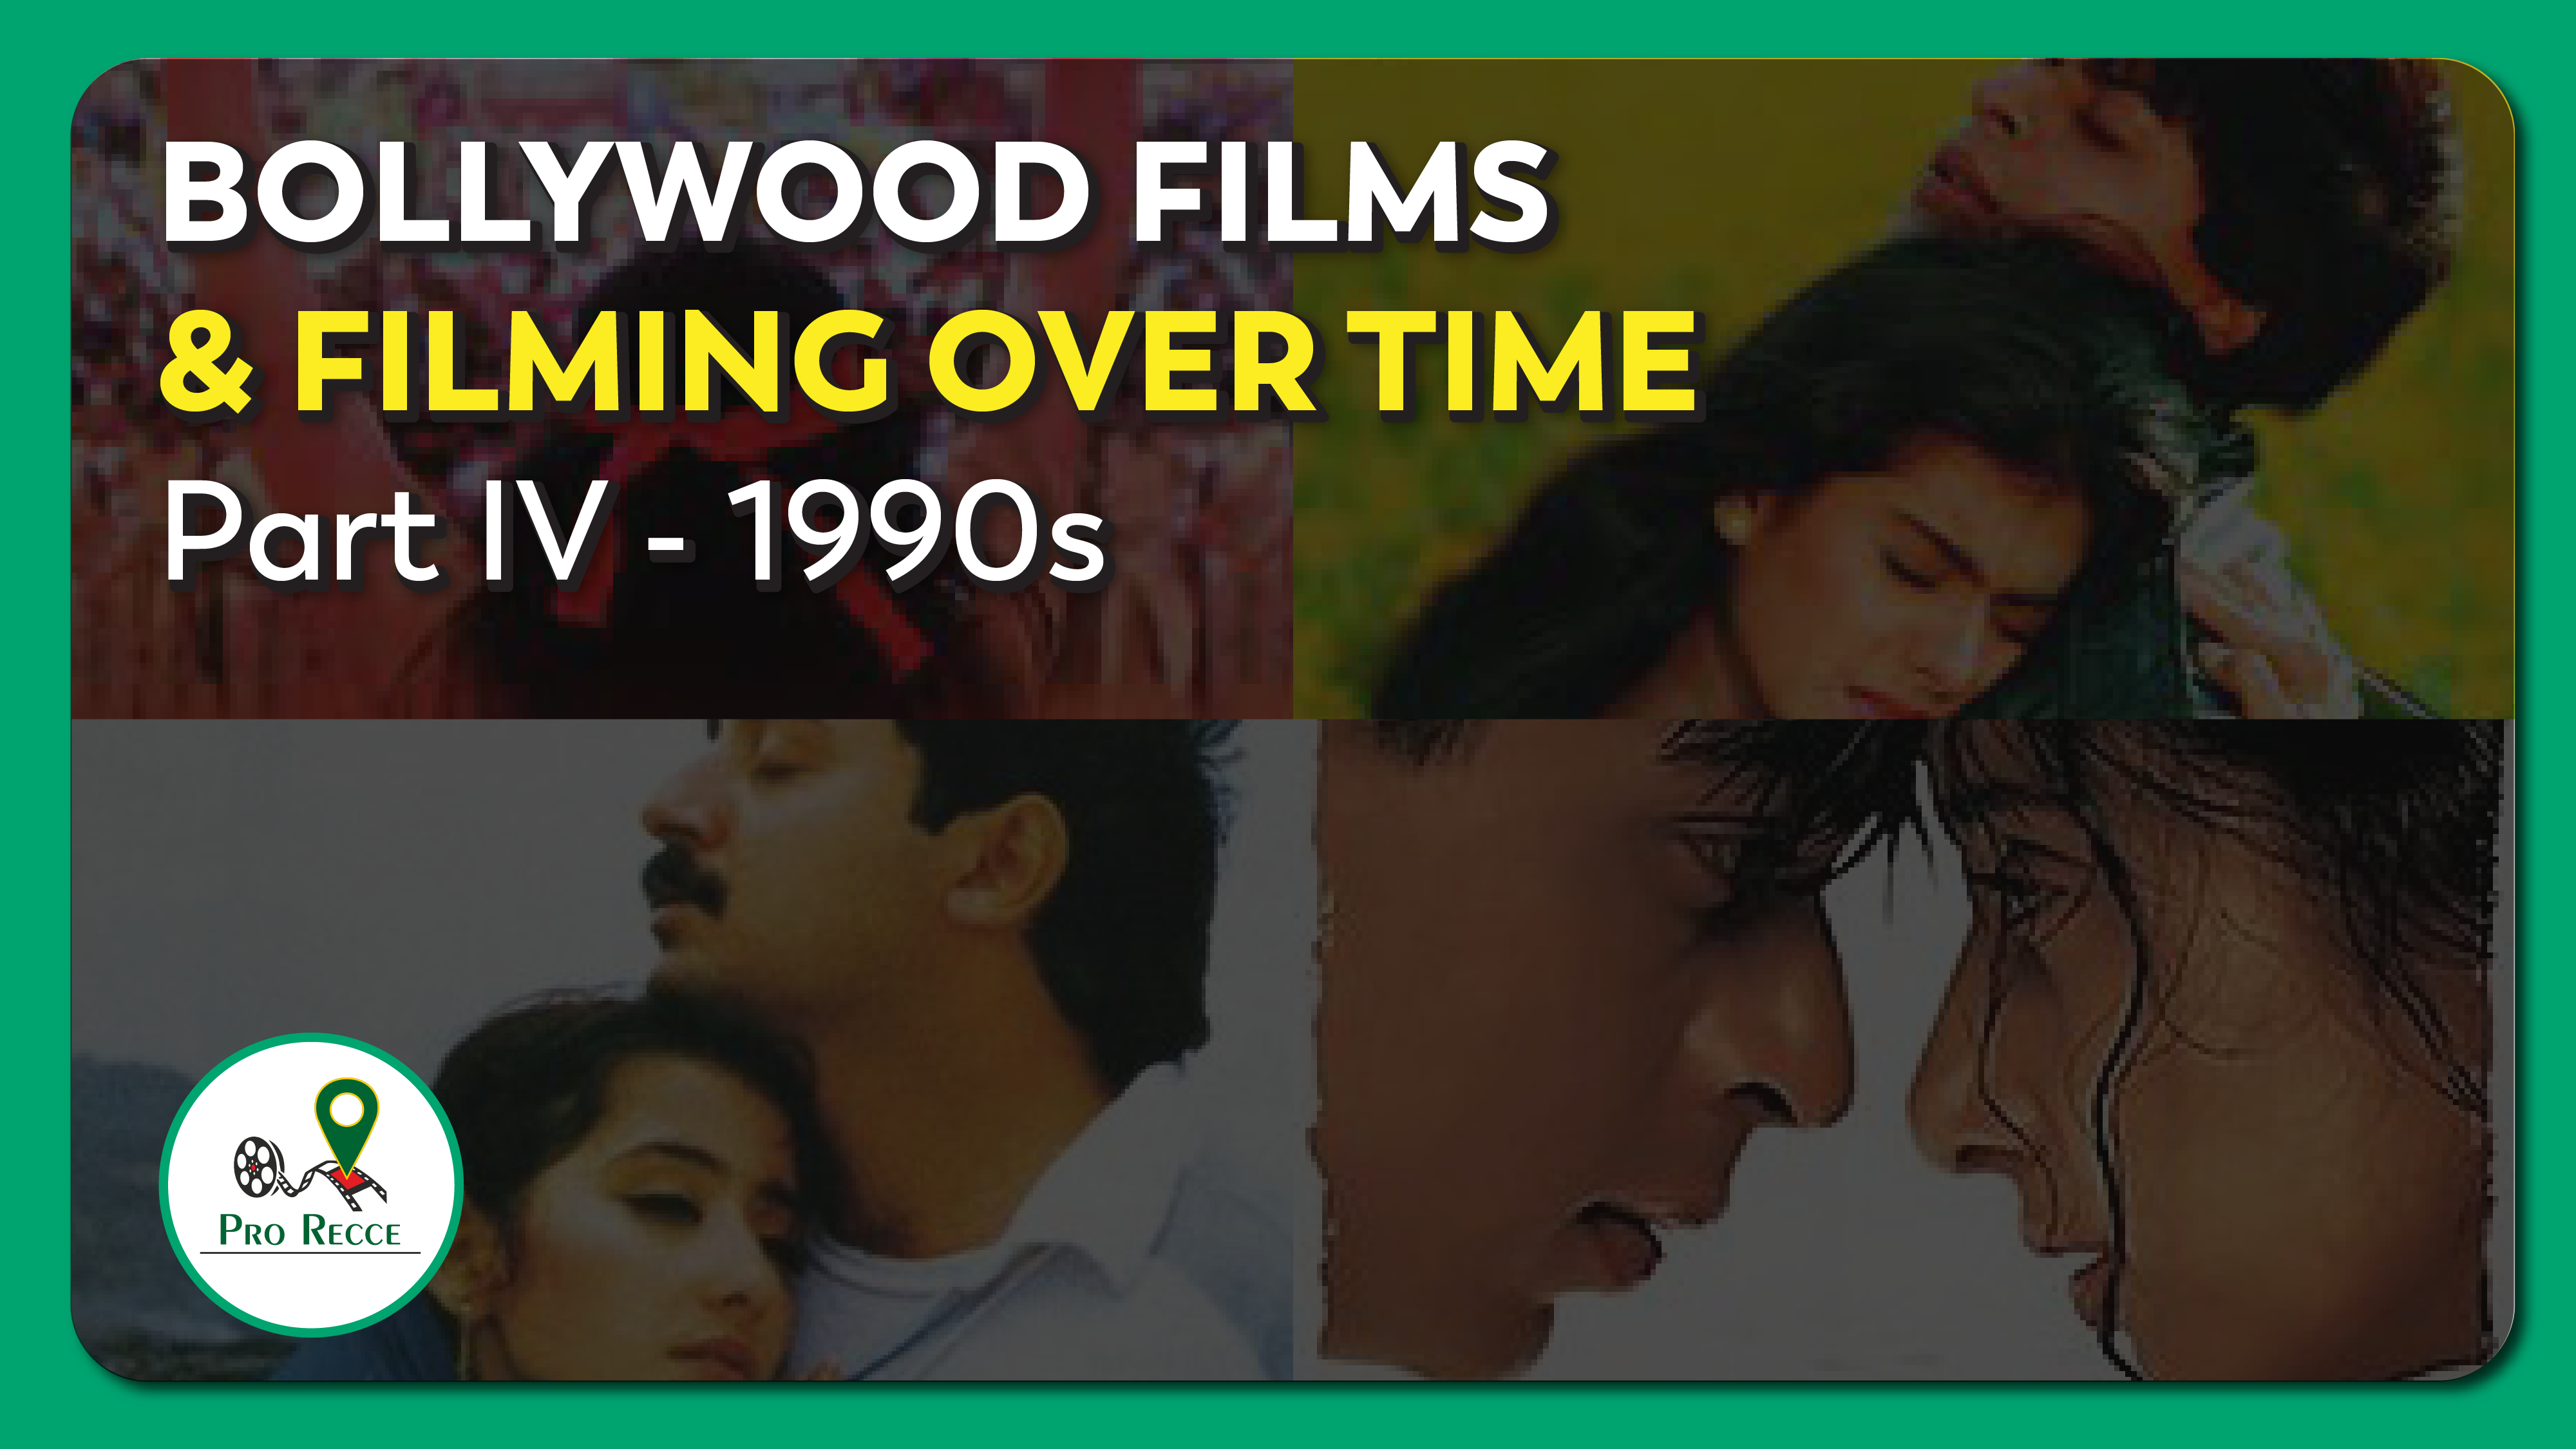 Bollywood Films and Filming Over Time 4.0